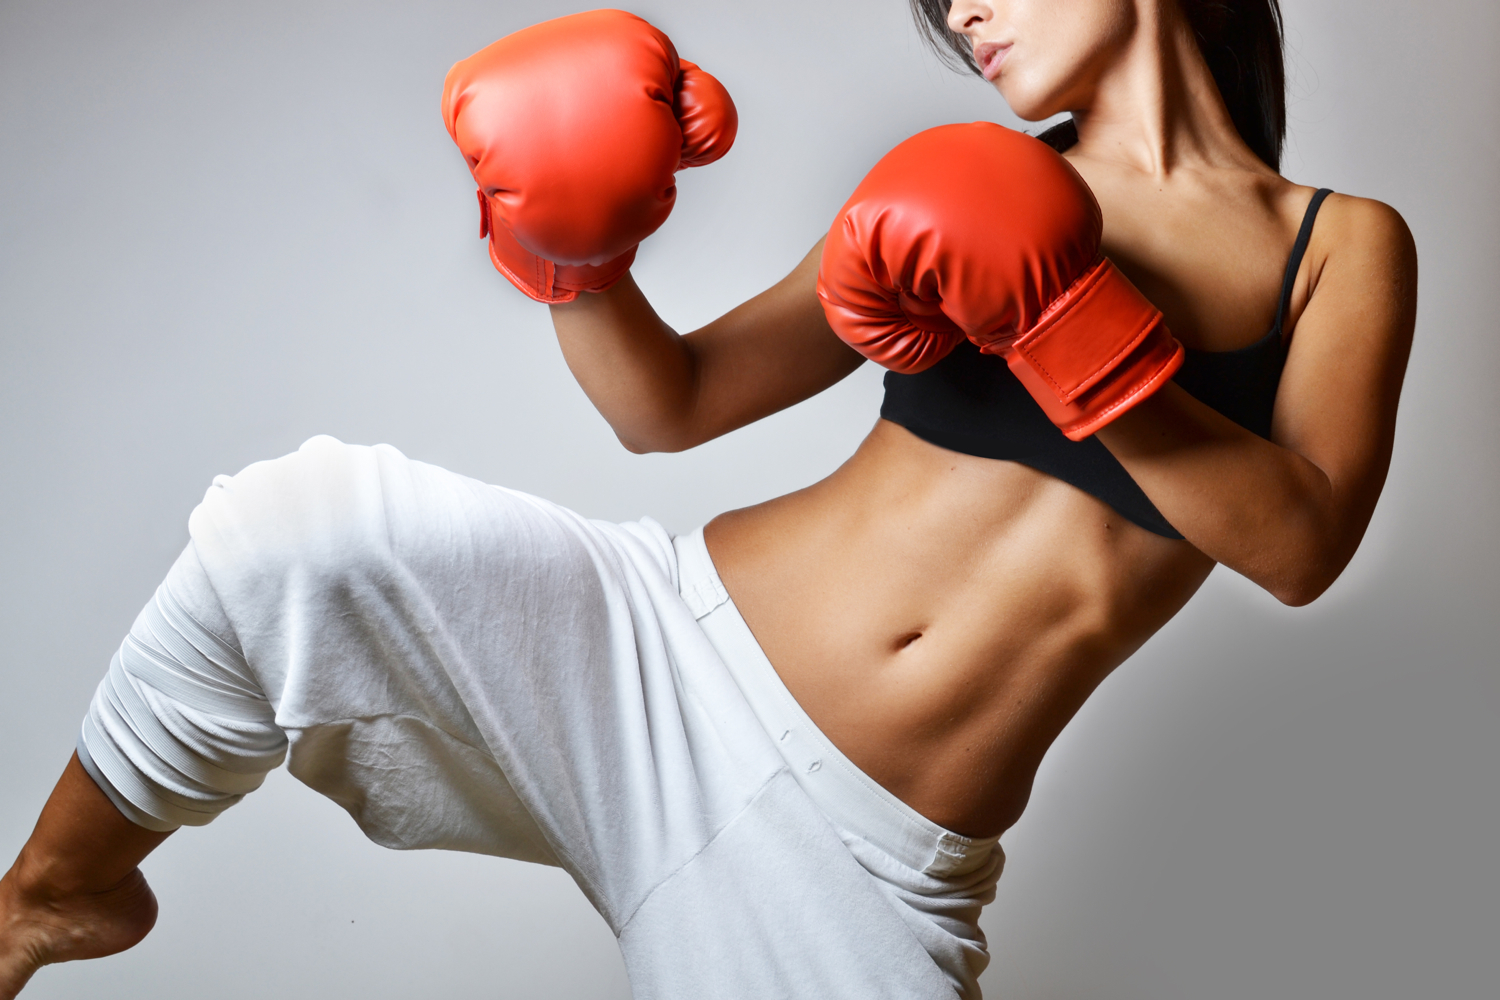 beautiful woman with the red boxing gloves, studio shot.jpg